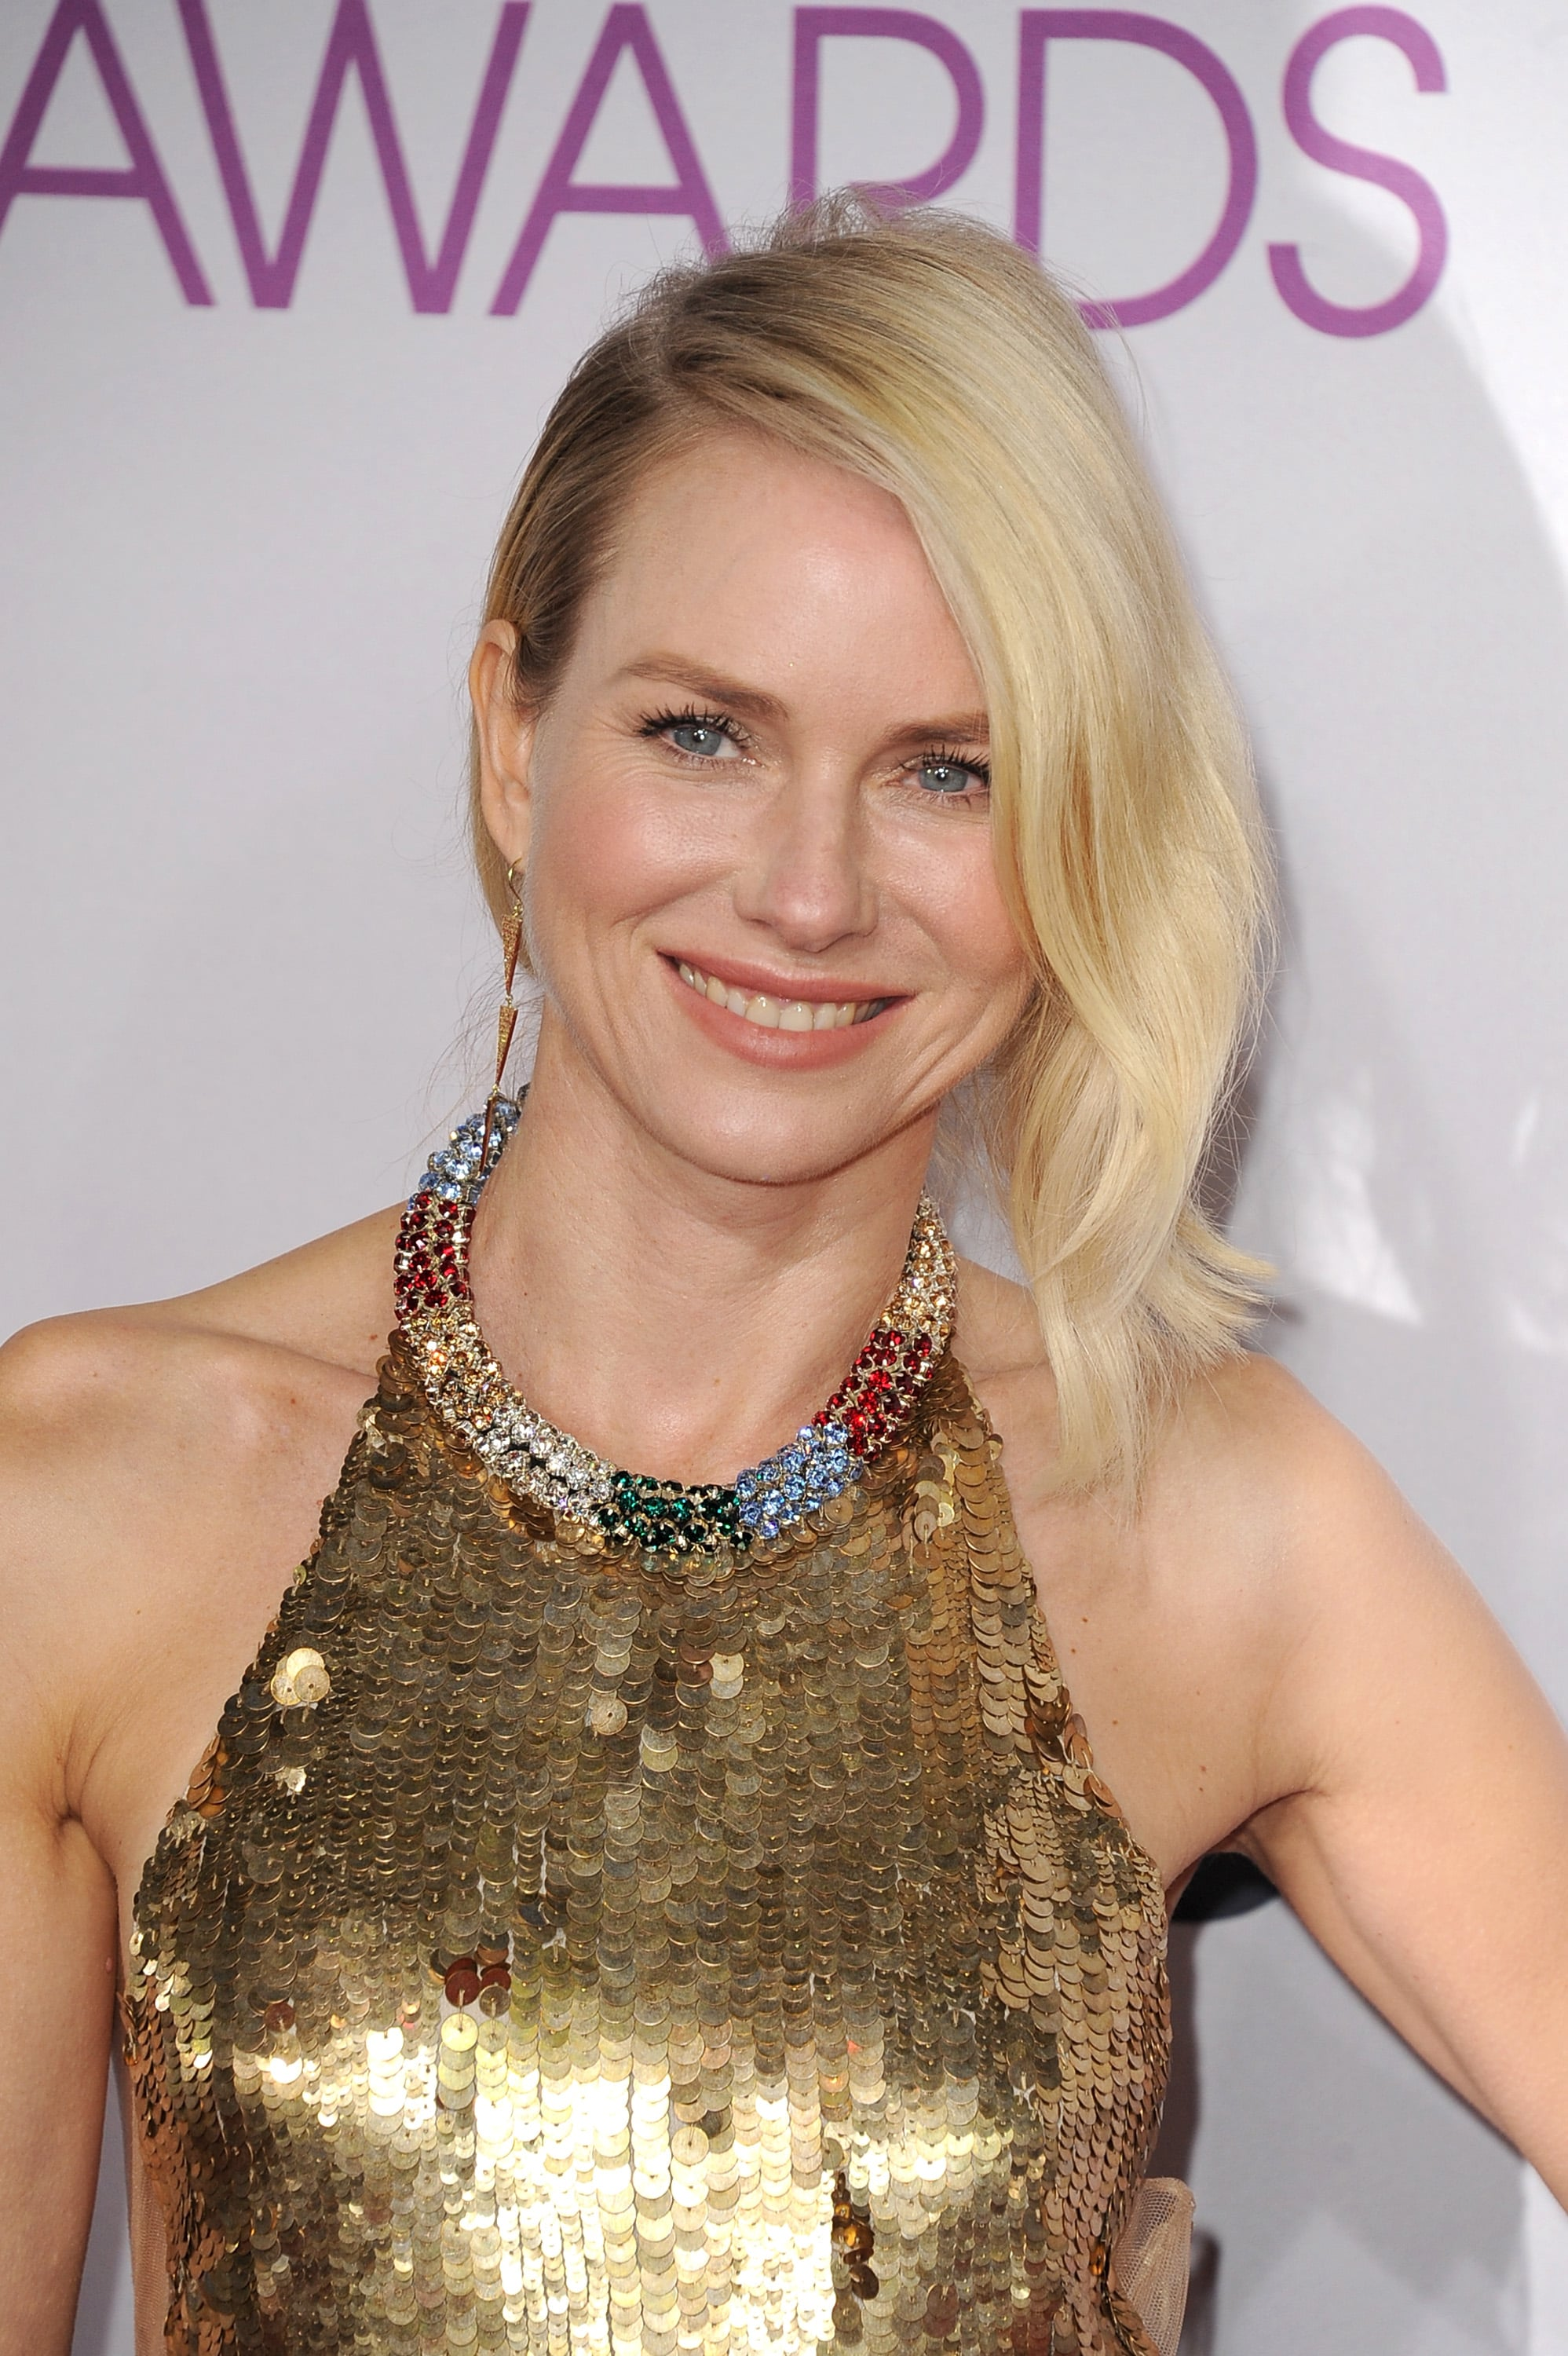 Naomi Watts was glowing in a gold Alexander McQueen gown.